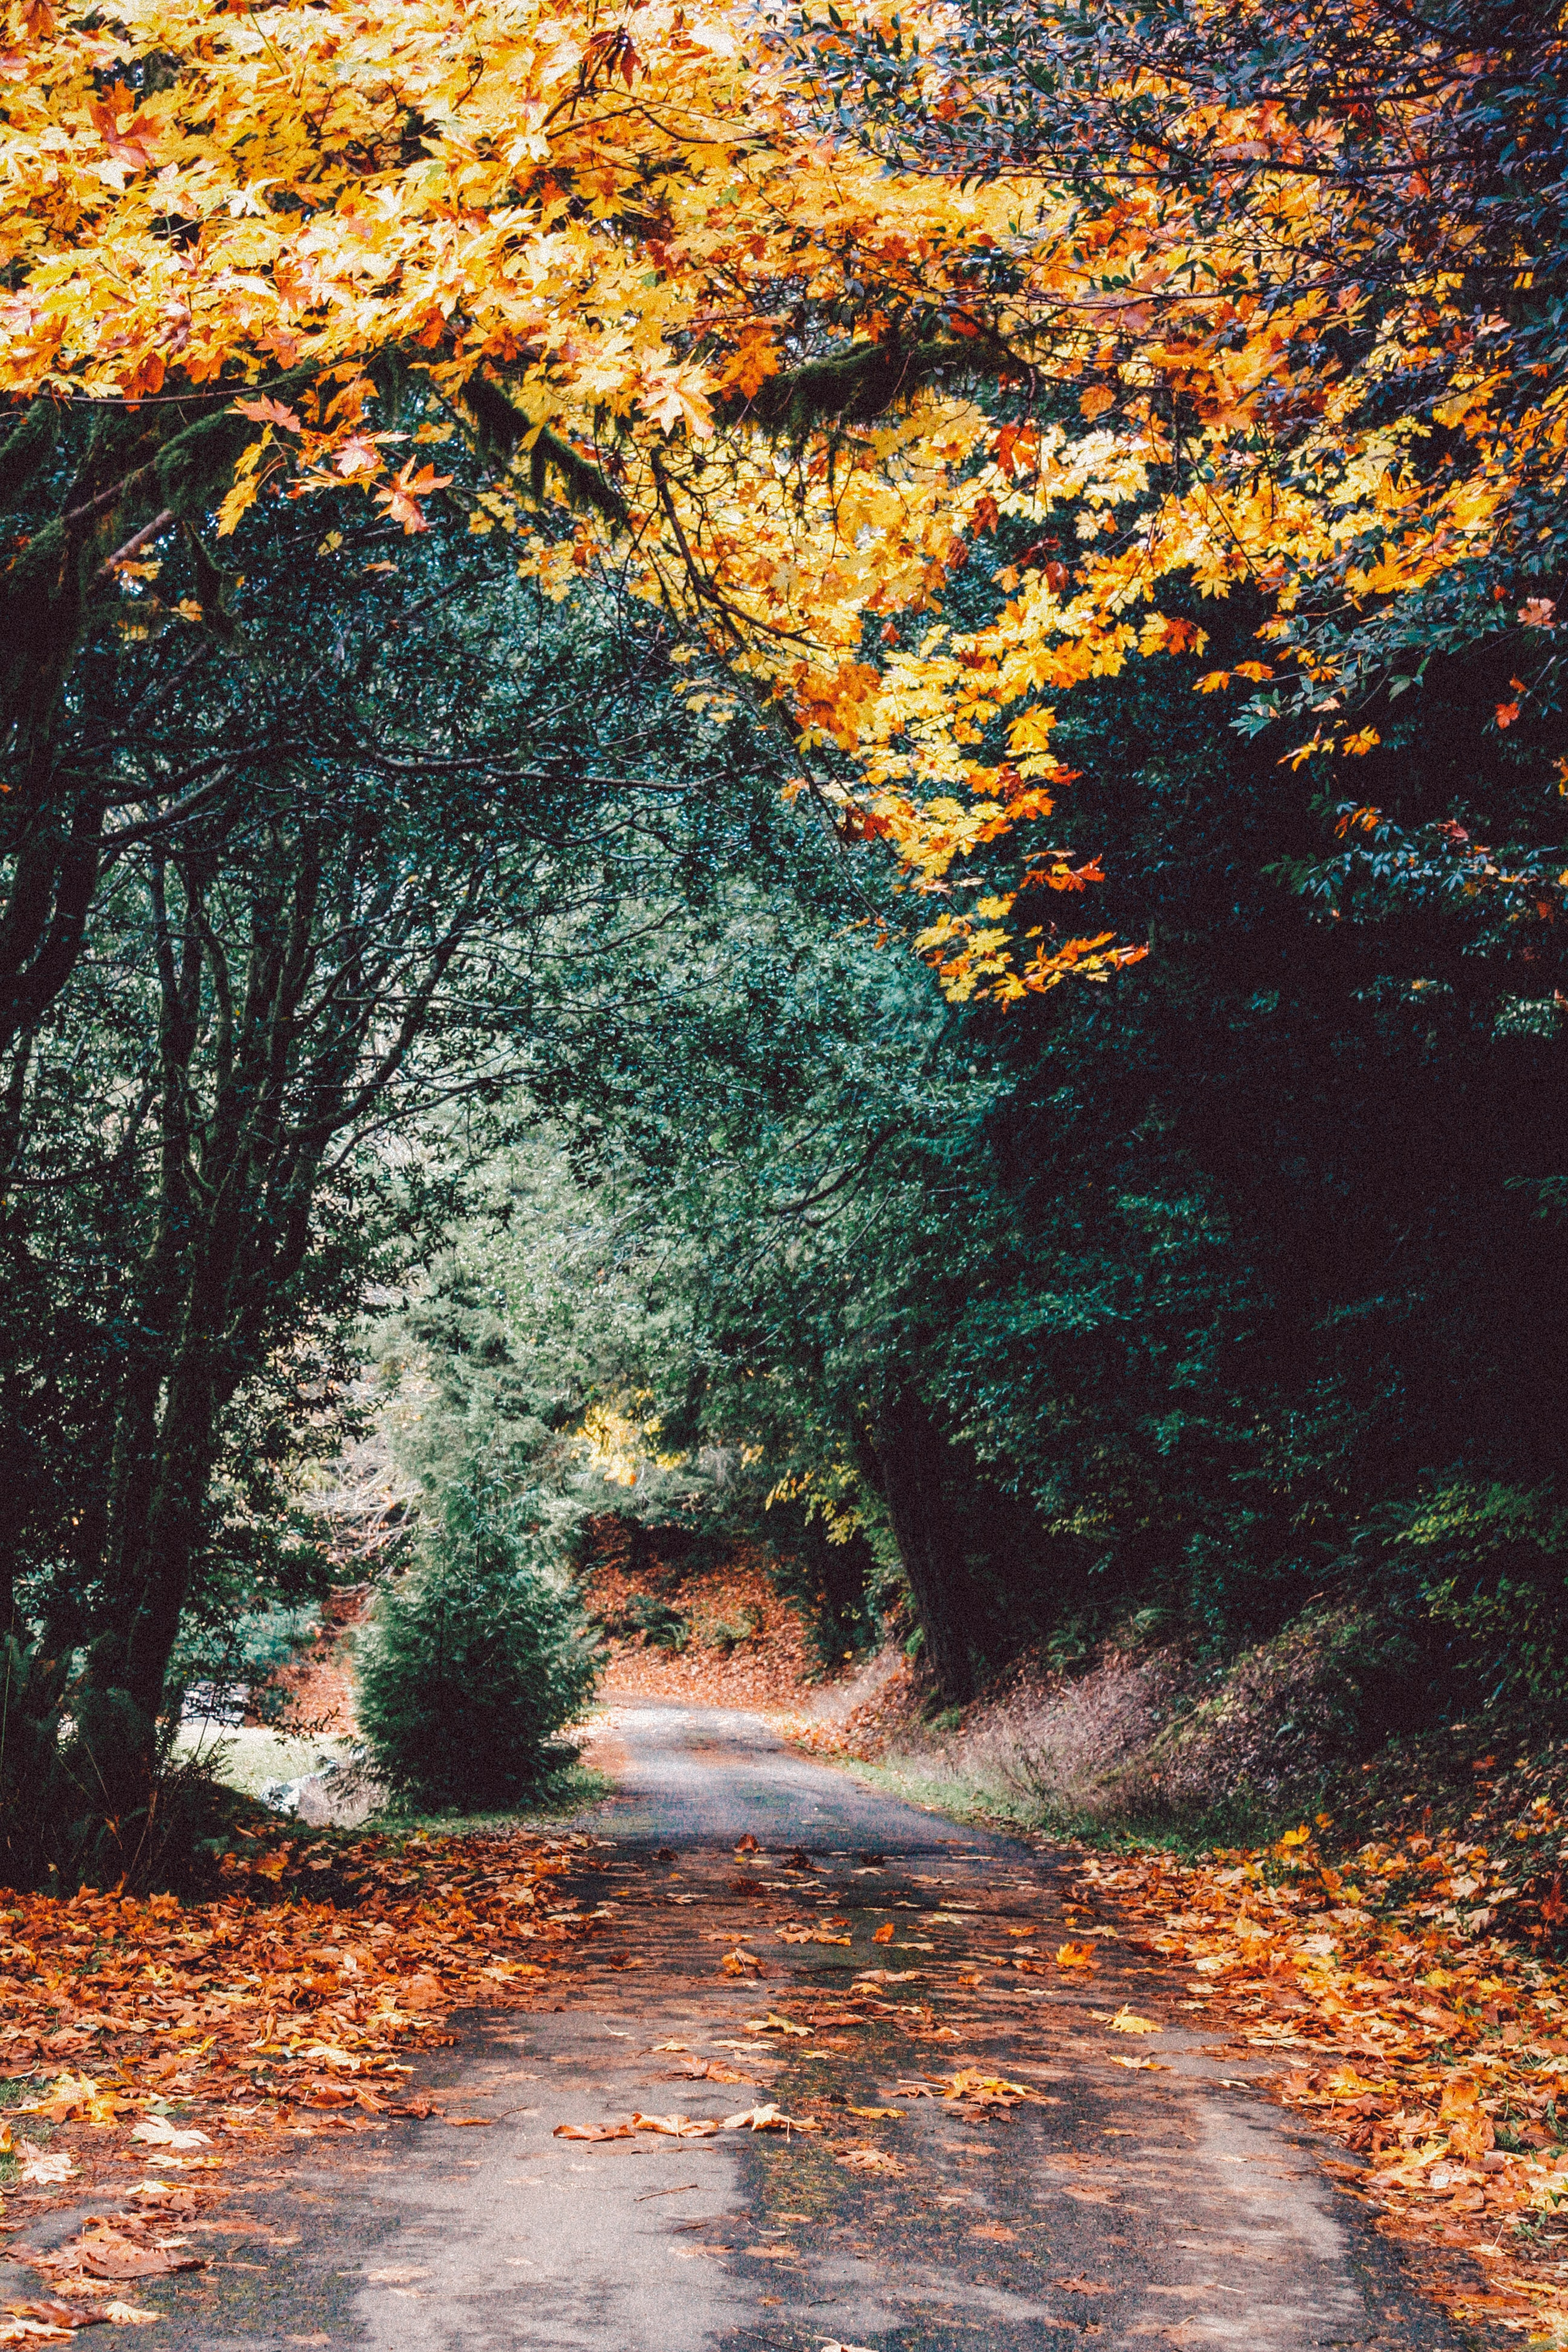 The season to come autumn-poetry-2018 stories